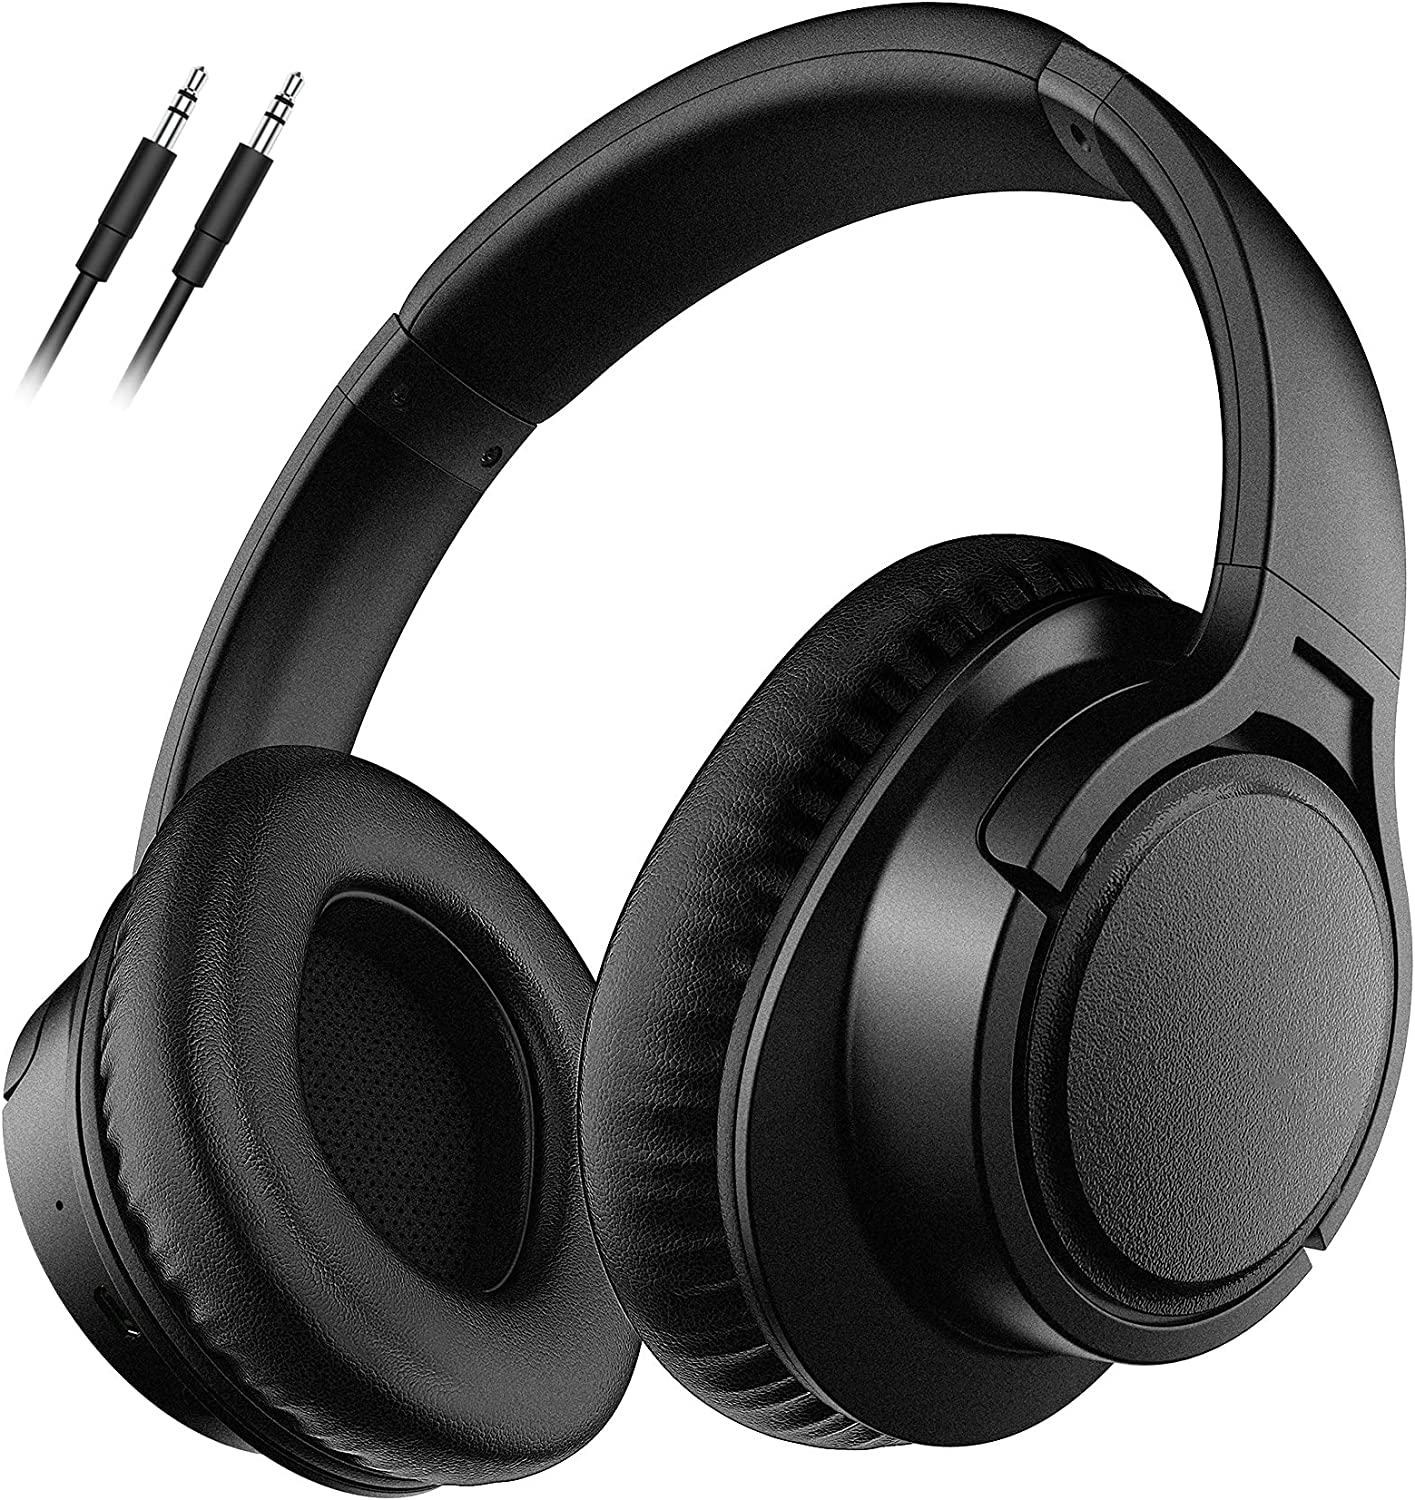 Wireless Headphones Over Ear, Wireless5.0 Wired Headset with Noise Reduction Mic, Hi-fi Stereo Bass, Soft Memory-Protein Earmuffs Headphones for Cellphones/TV/PC